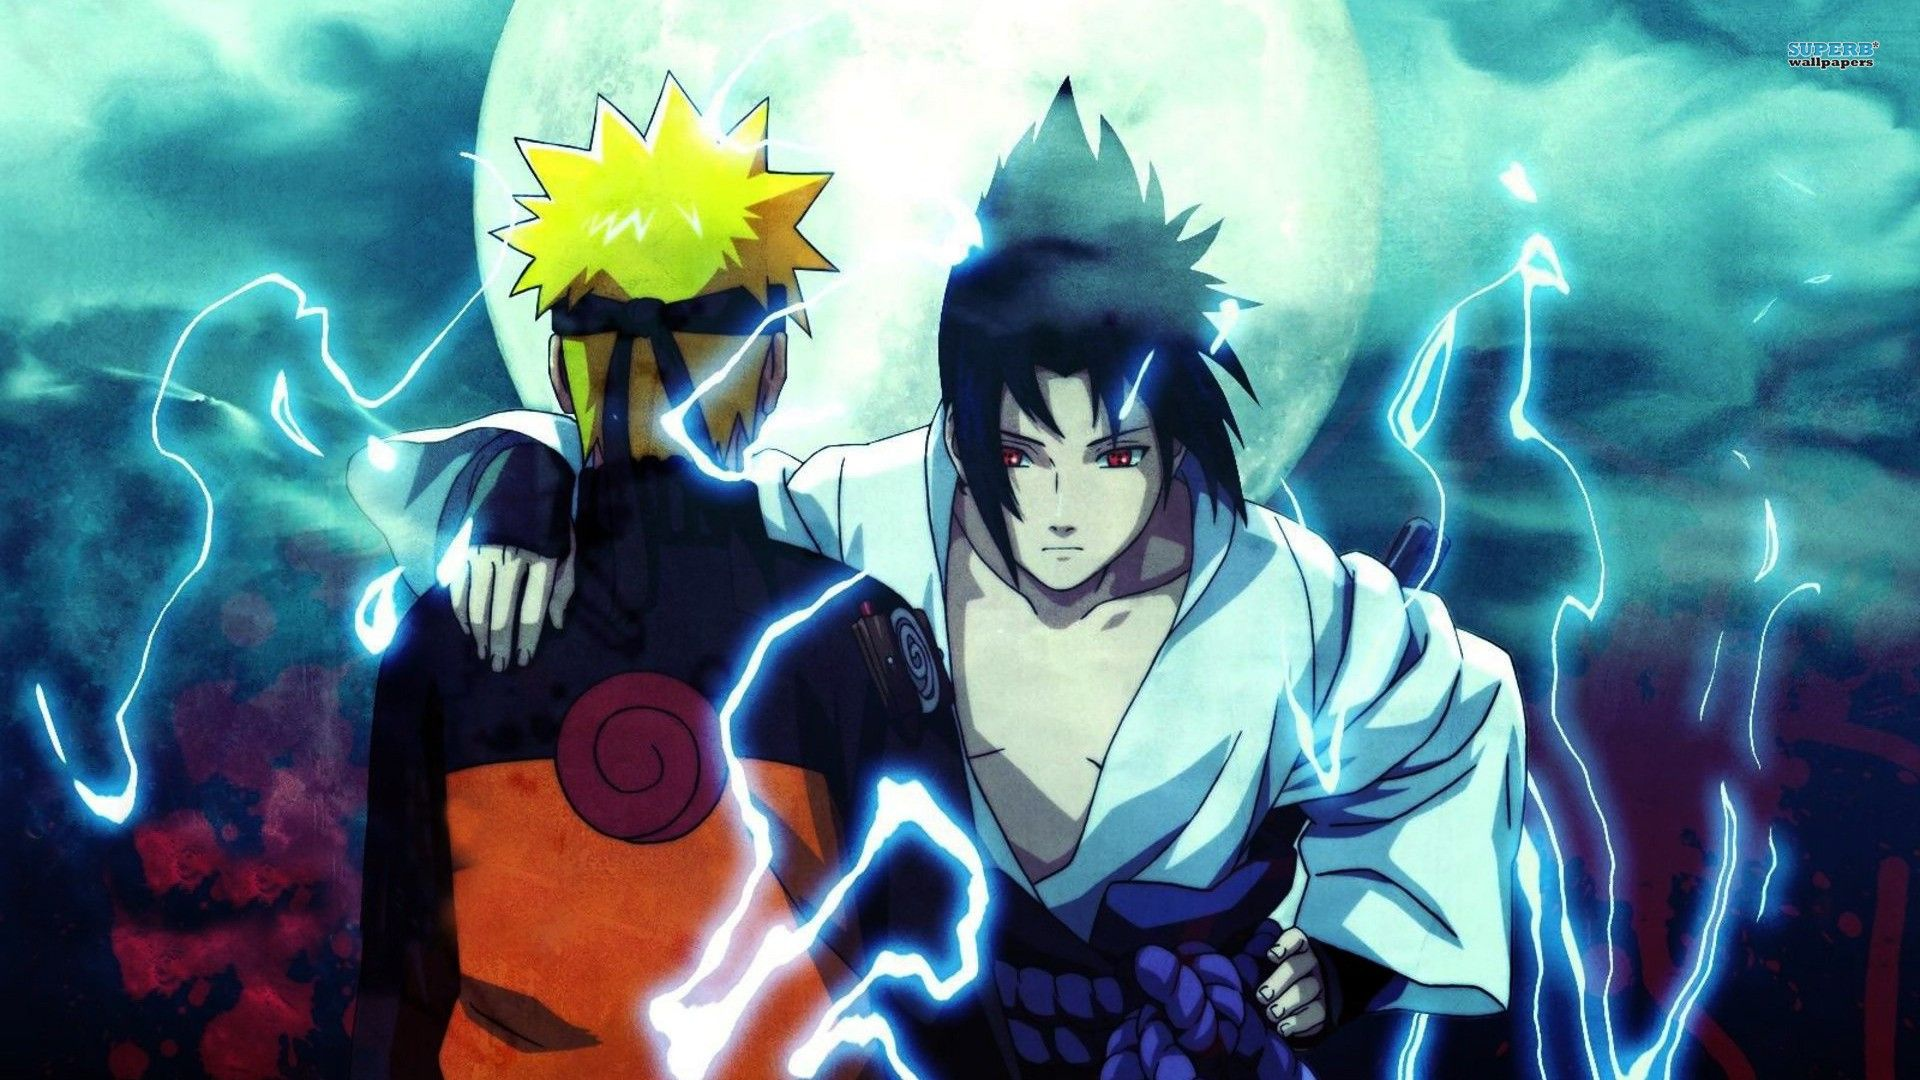 Naruto And Sasuke Wallpapers Top Free Naruto And Sasuke